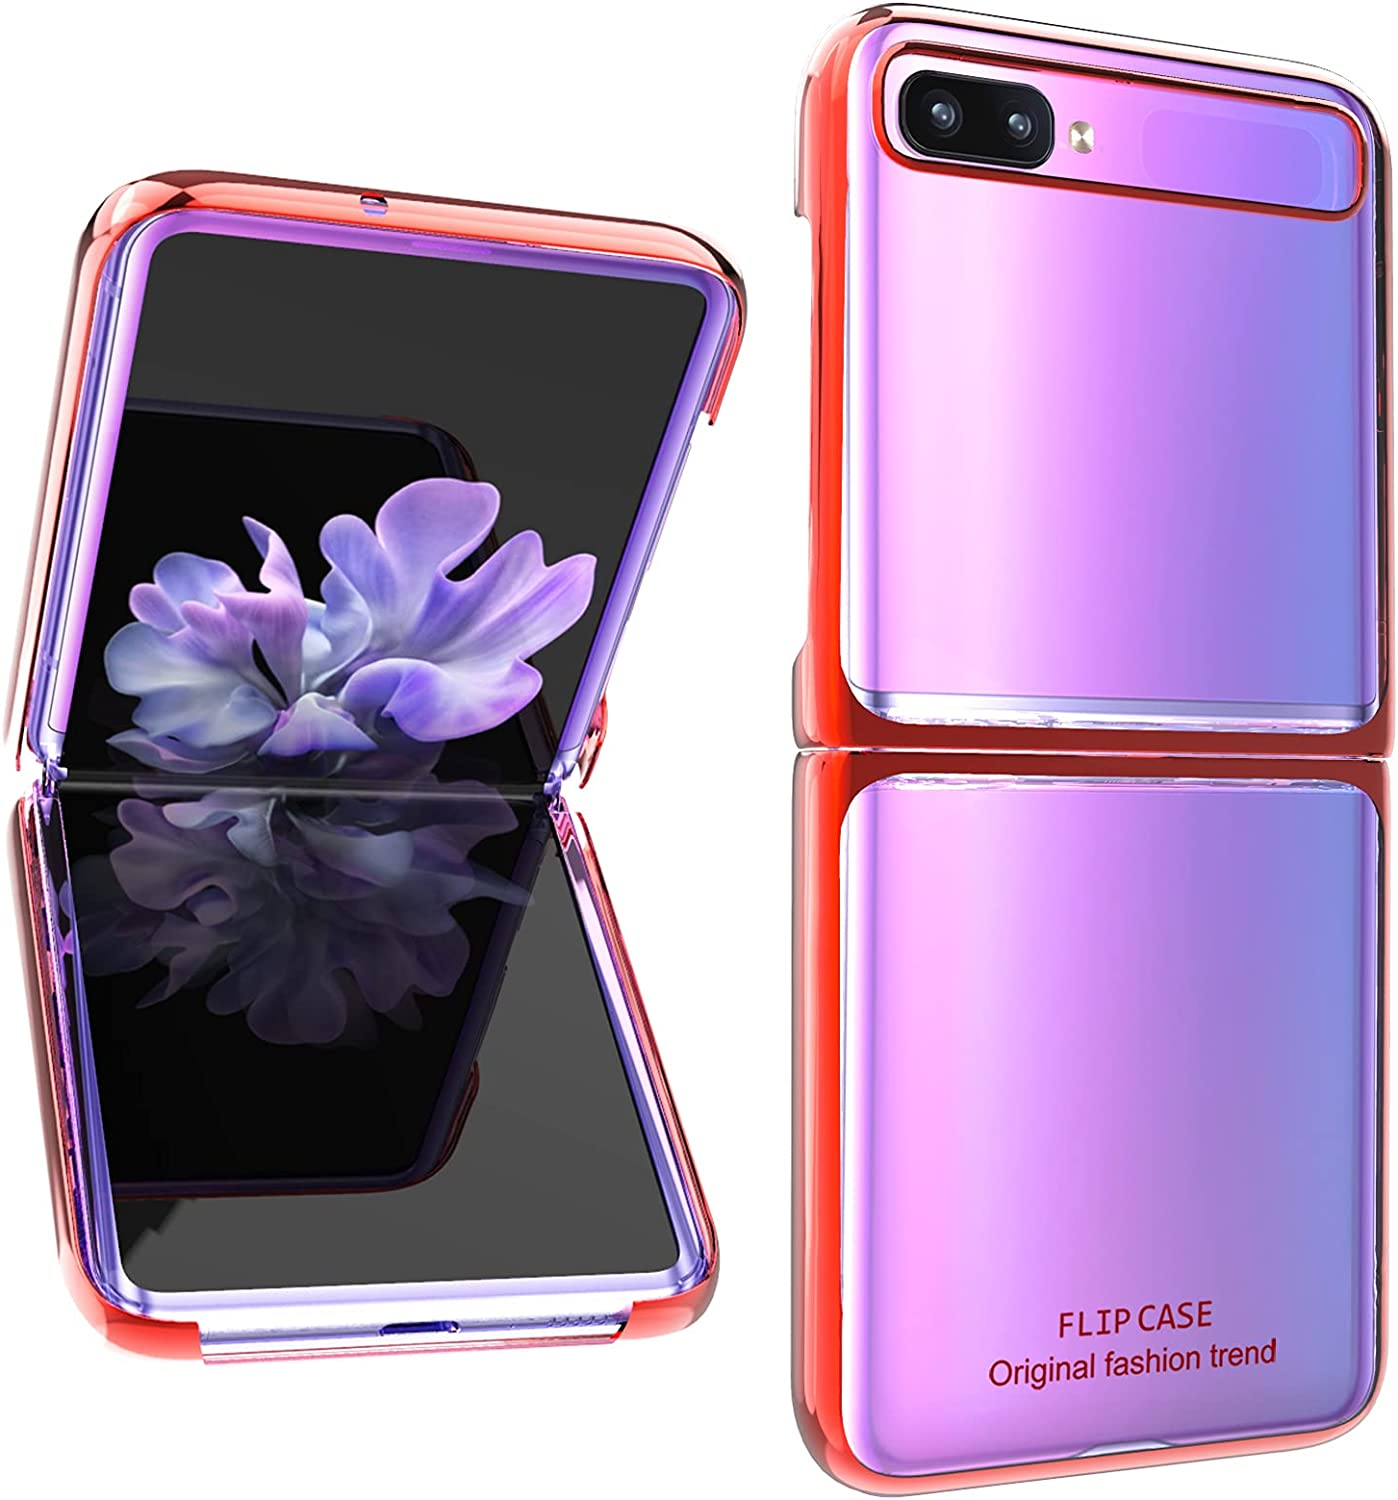 AIGOMARA Clear Case for Samsung Galaxy Z Flip 5G Hard PC Crystal Cover Anti-Scratch Shockproof Protection Thin Slim Phone Cover for Galaxy Z Flip 5G, Clear-Red